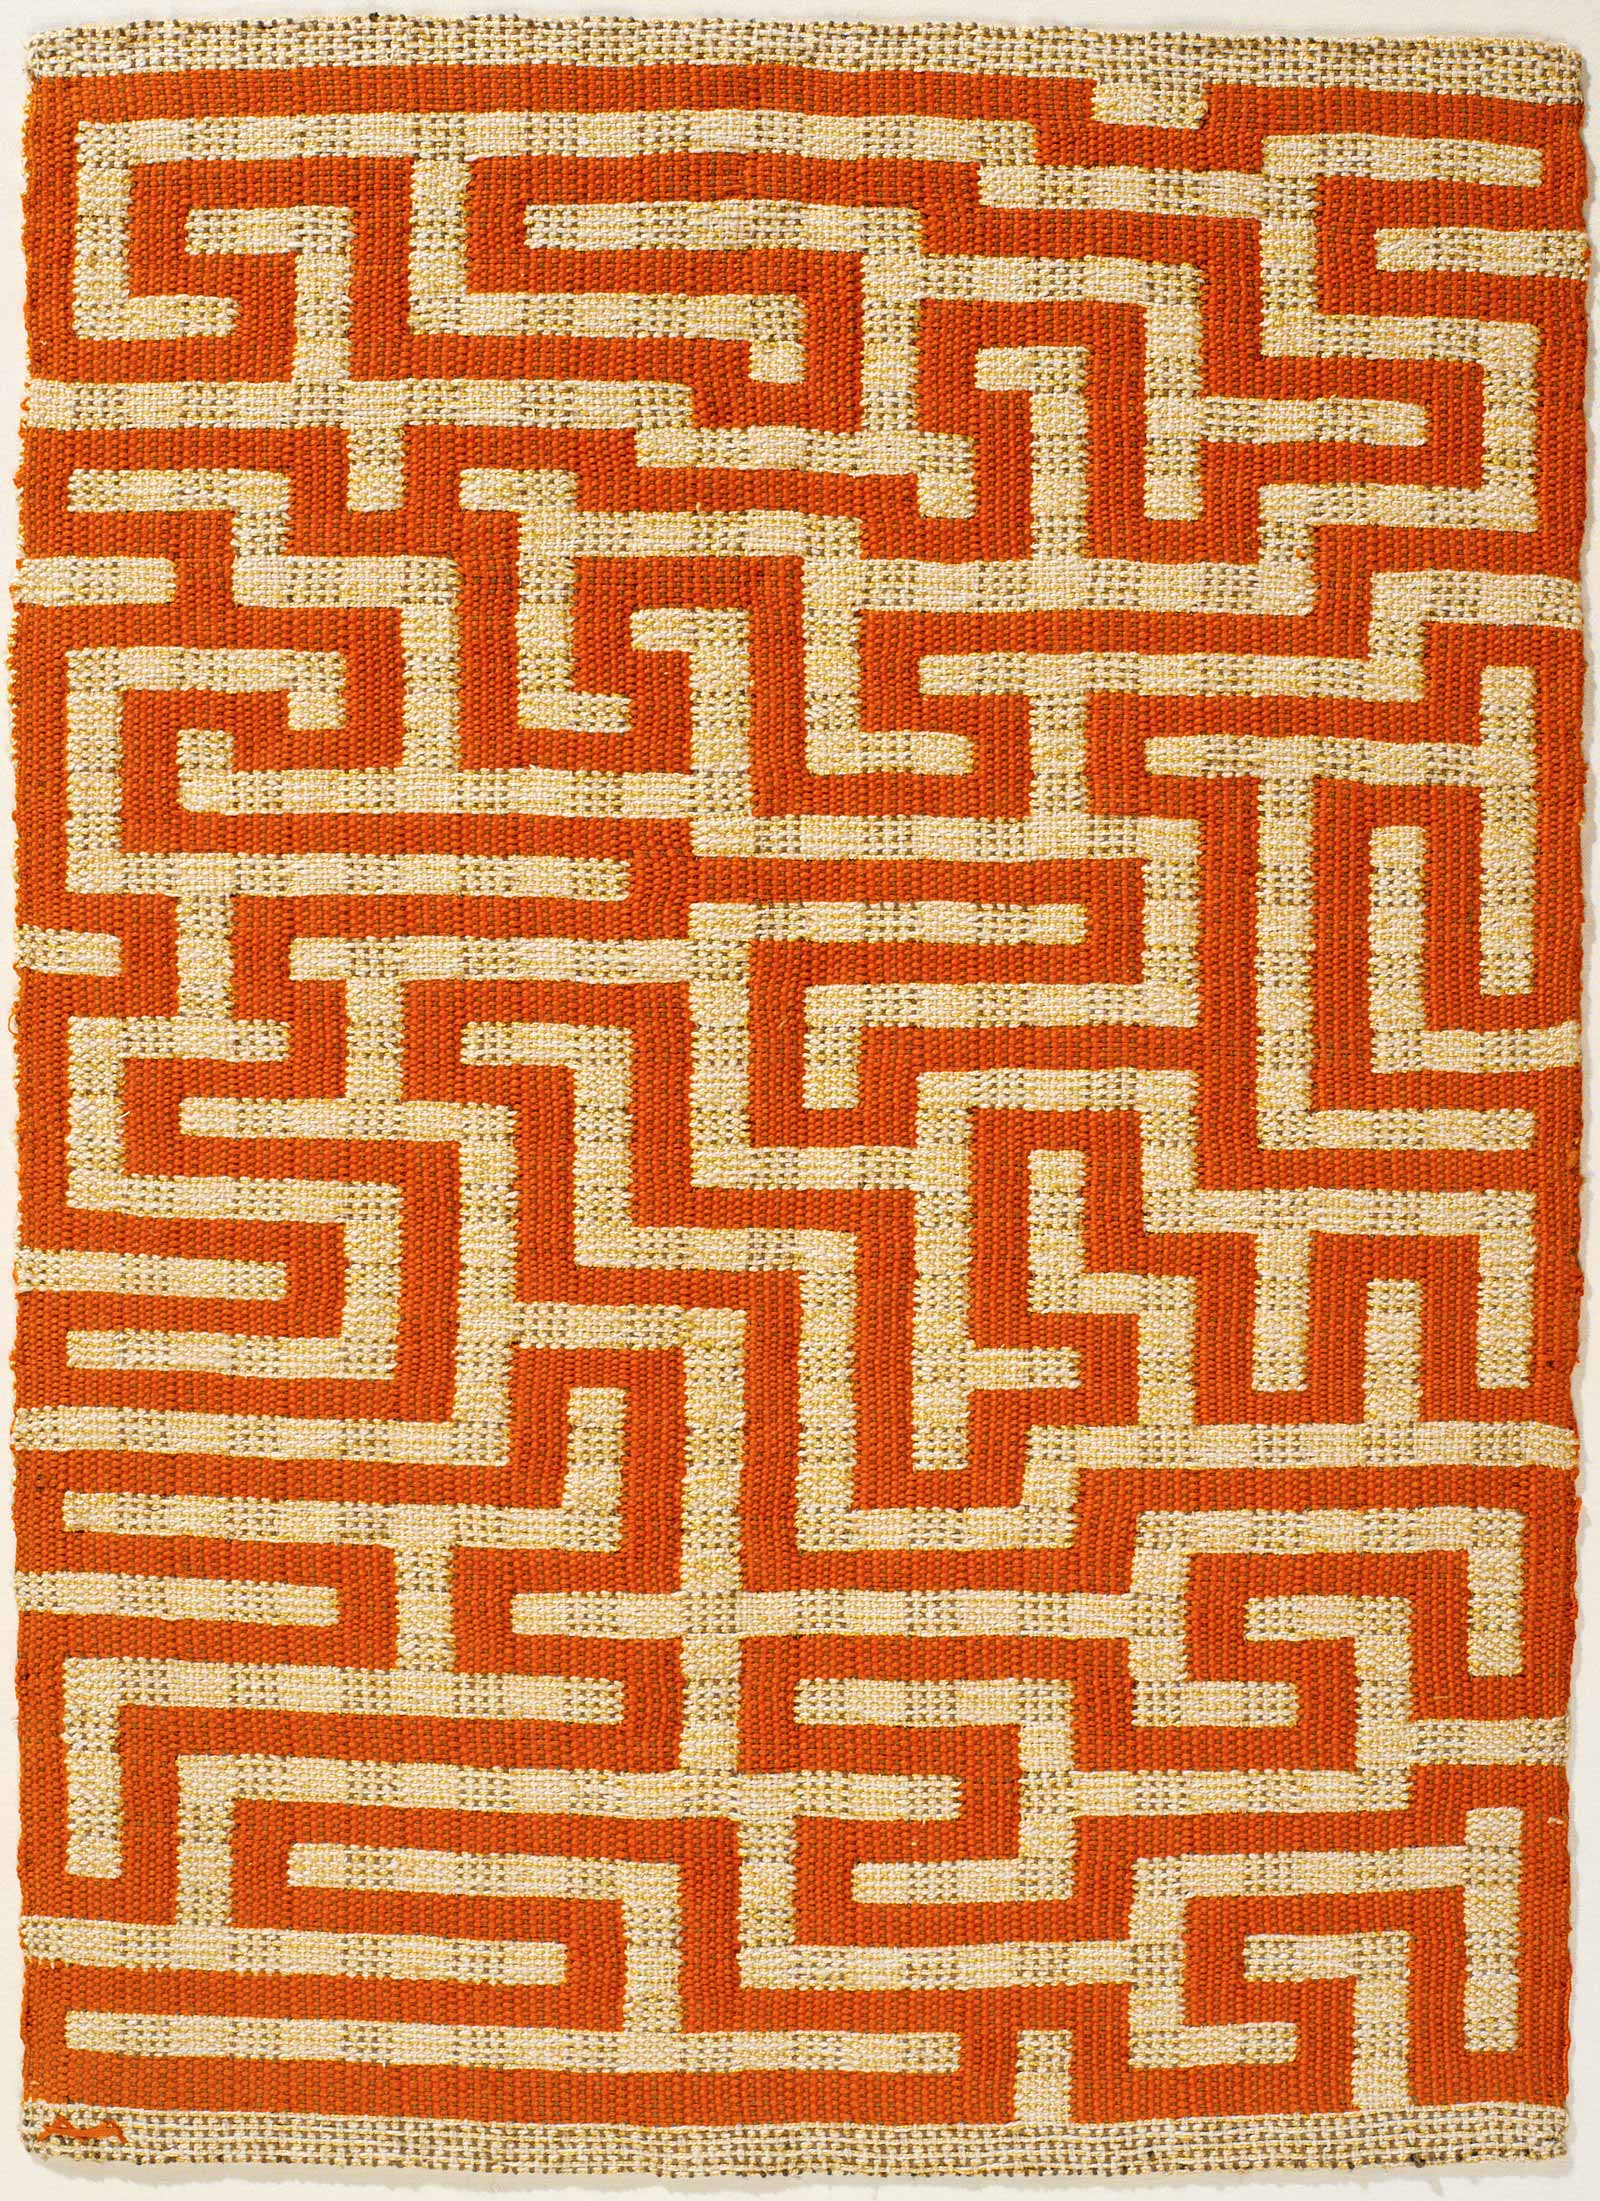 Anni Albers Picking Up The Thread By Andrew Dickson